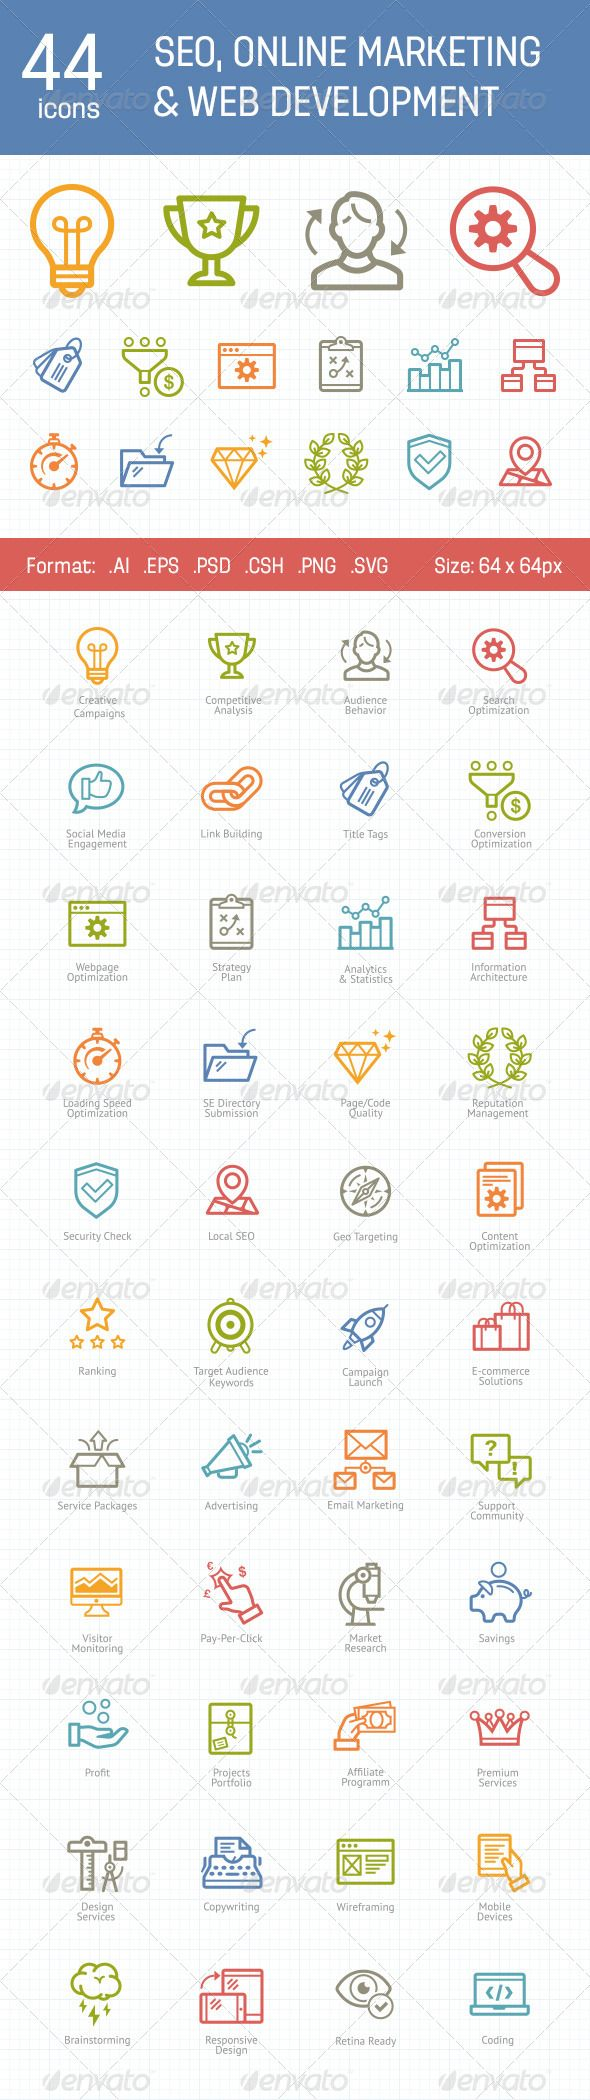 44 SEO, Online Marketing & Web Development Icons — Photoshop PSD #seo tools #outline • Available here → https://graphicriver.net/item/44-seo-online-marketing-web-development-icons/7553451?ref=pxcr